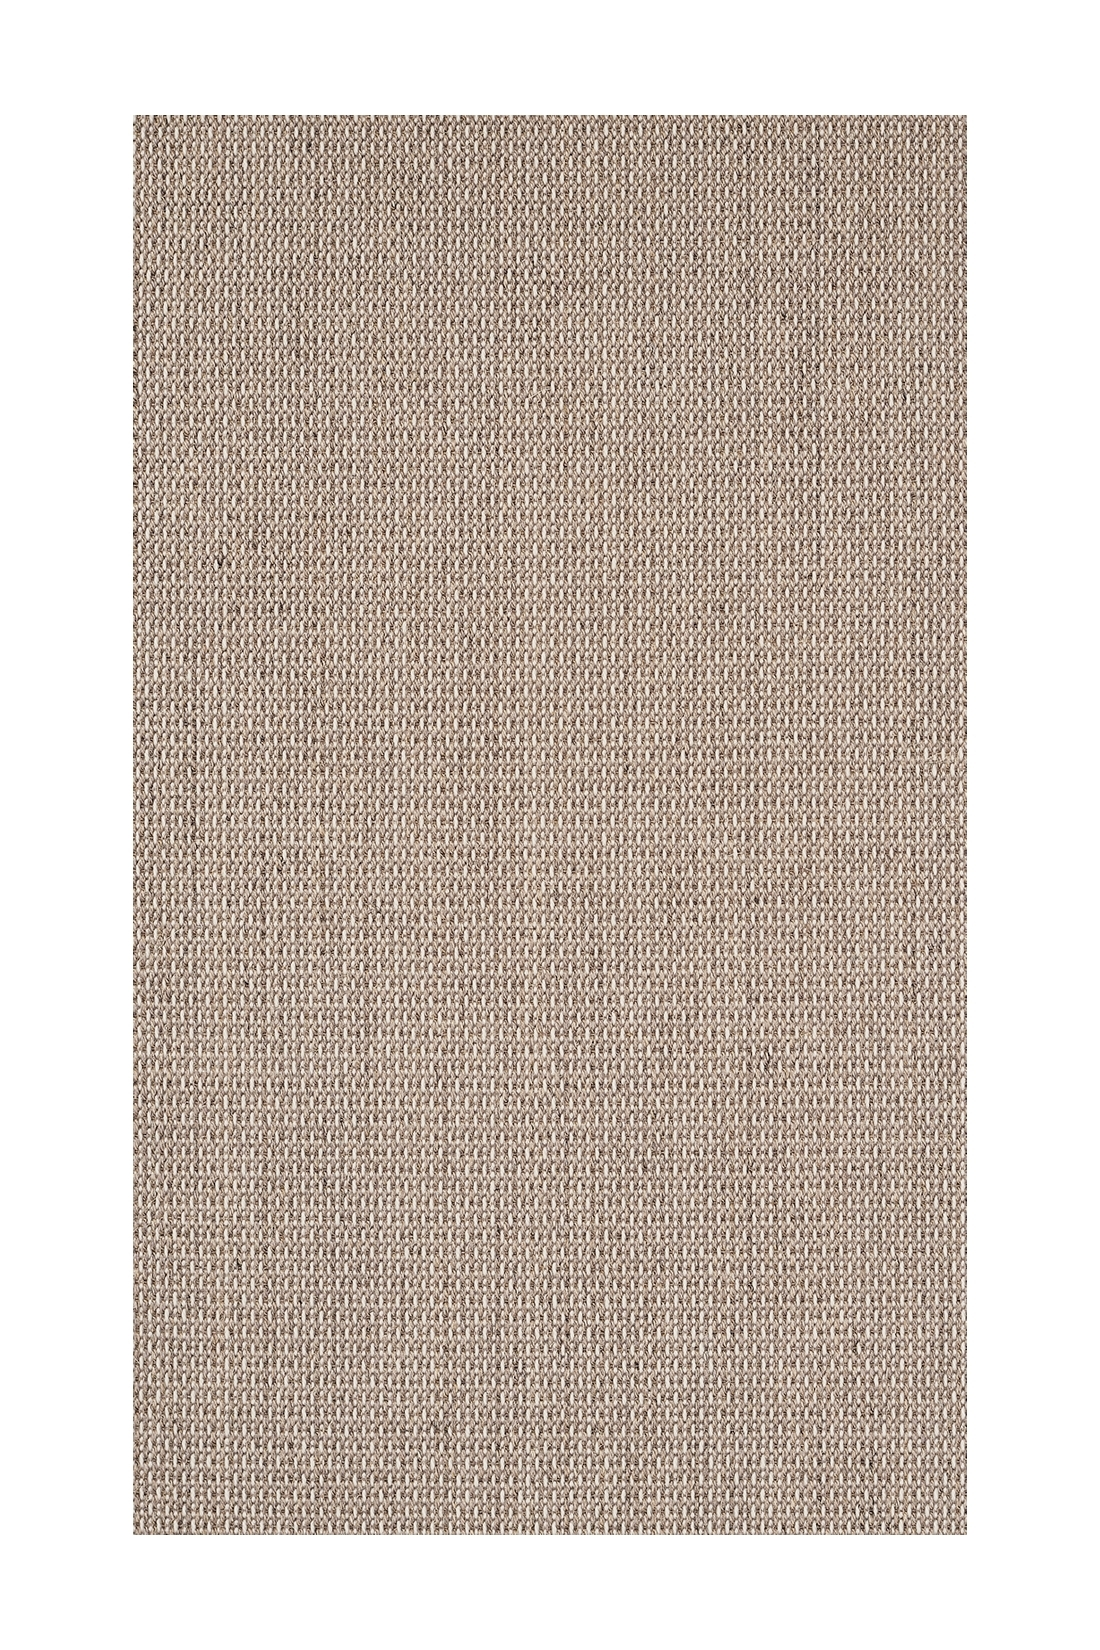 Wool Sisal Carpet Zebra Area Rug Large Area Rugs On Sale Manual 09 For Wool Sisal Area Rugs (#13 of 15)